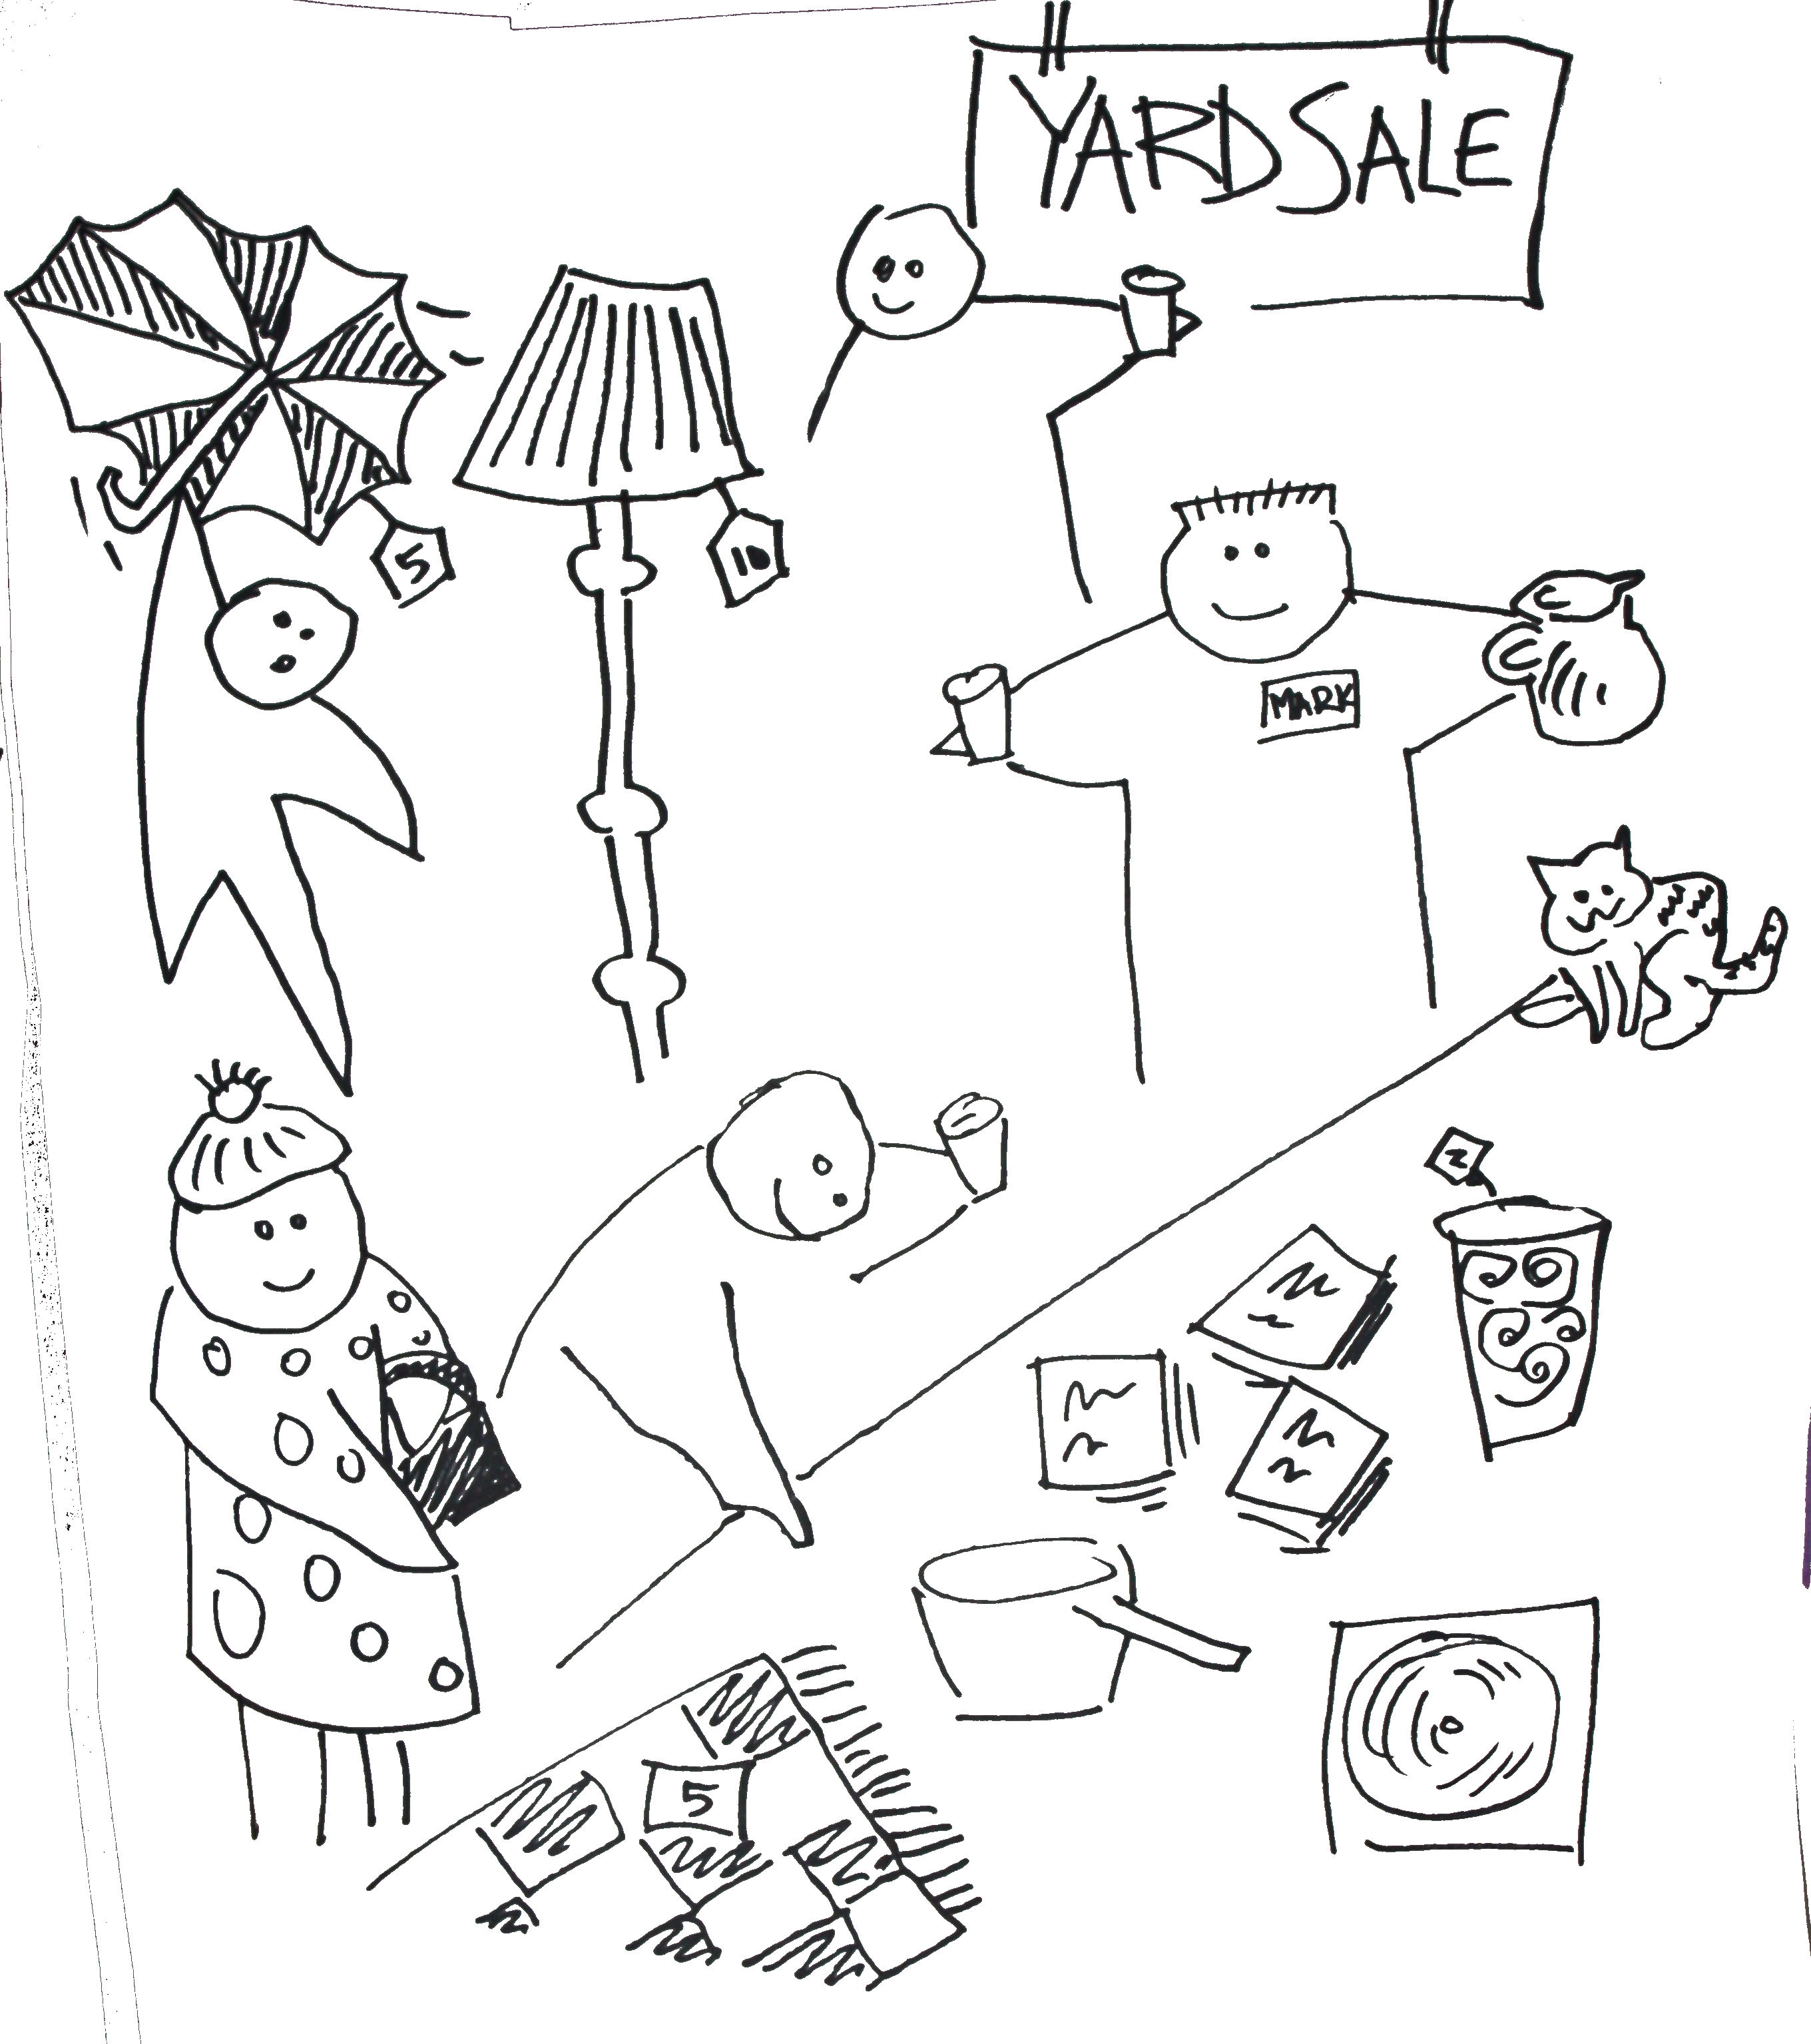 Have a yard sale (or something else) with a focus on making connections with your neighbours